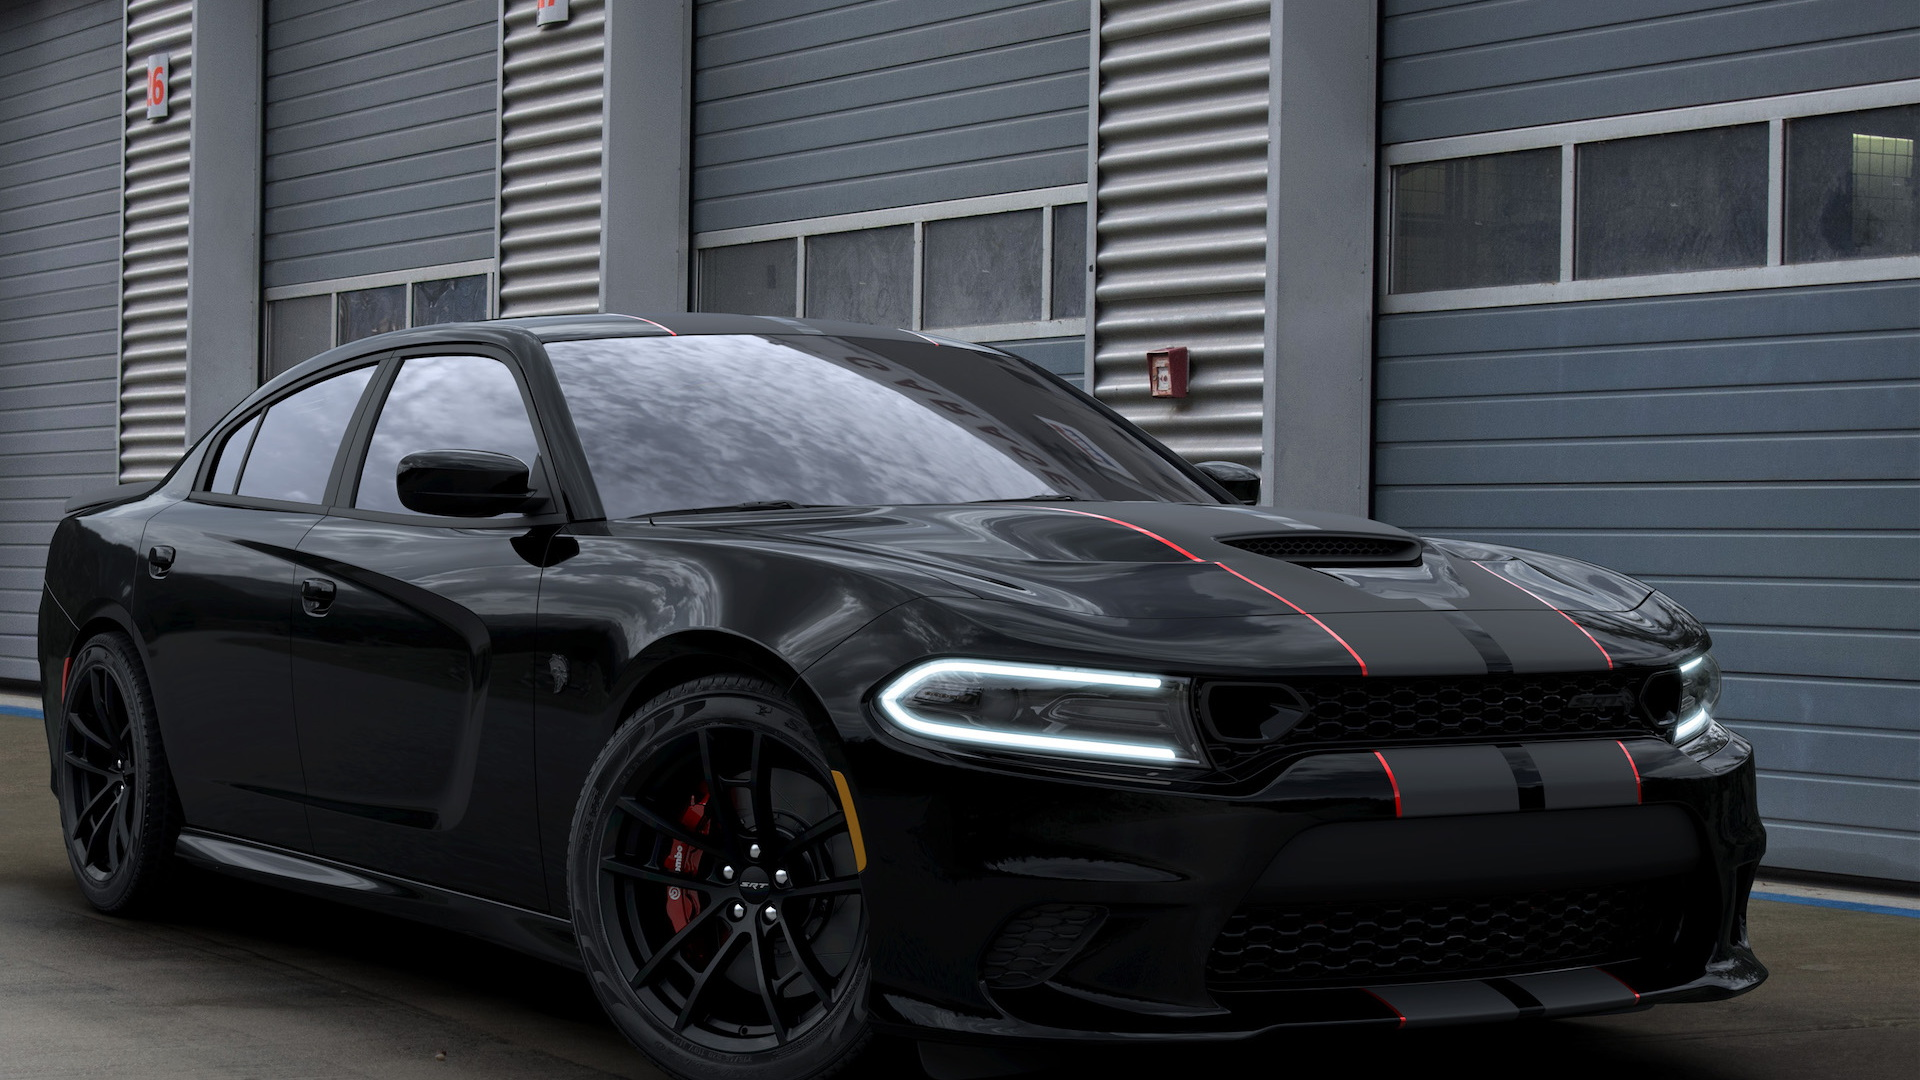 2019 Dodge Charger Hellcat Octane Edition